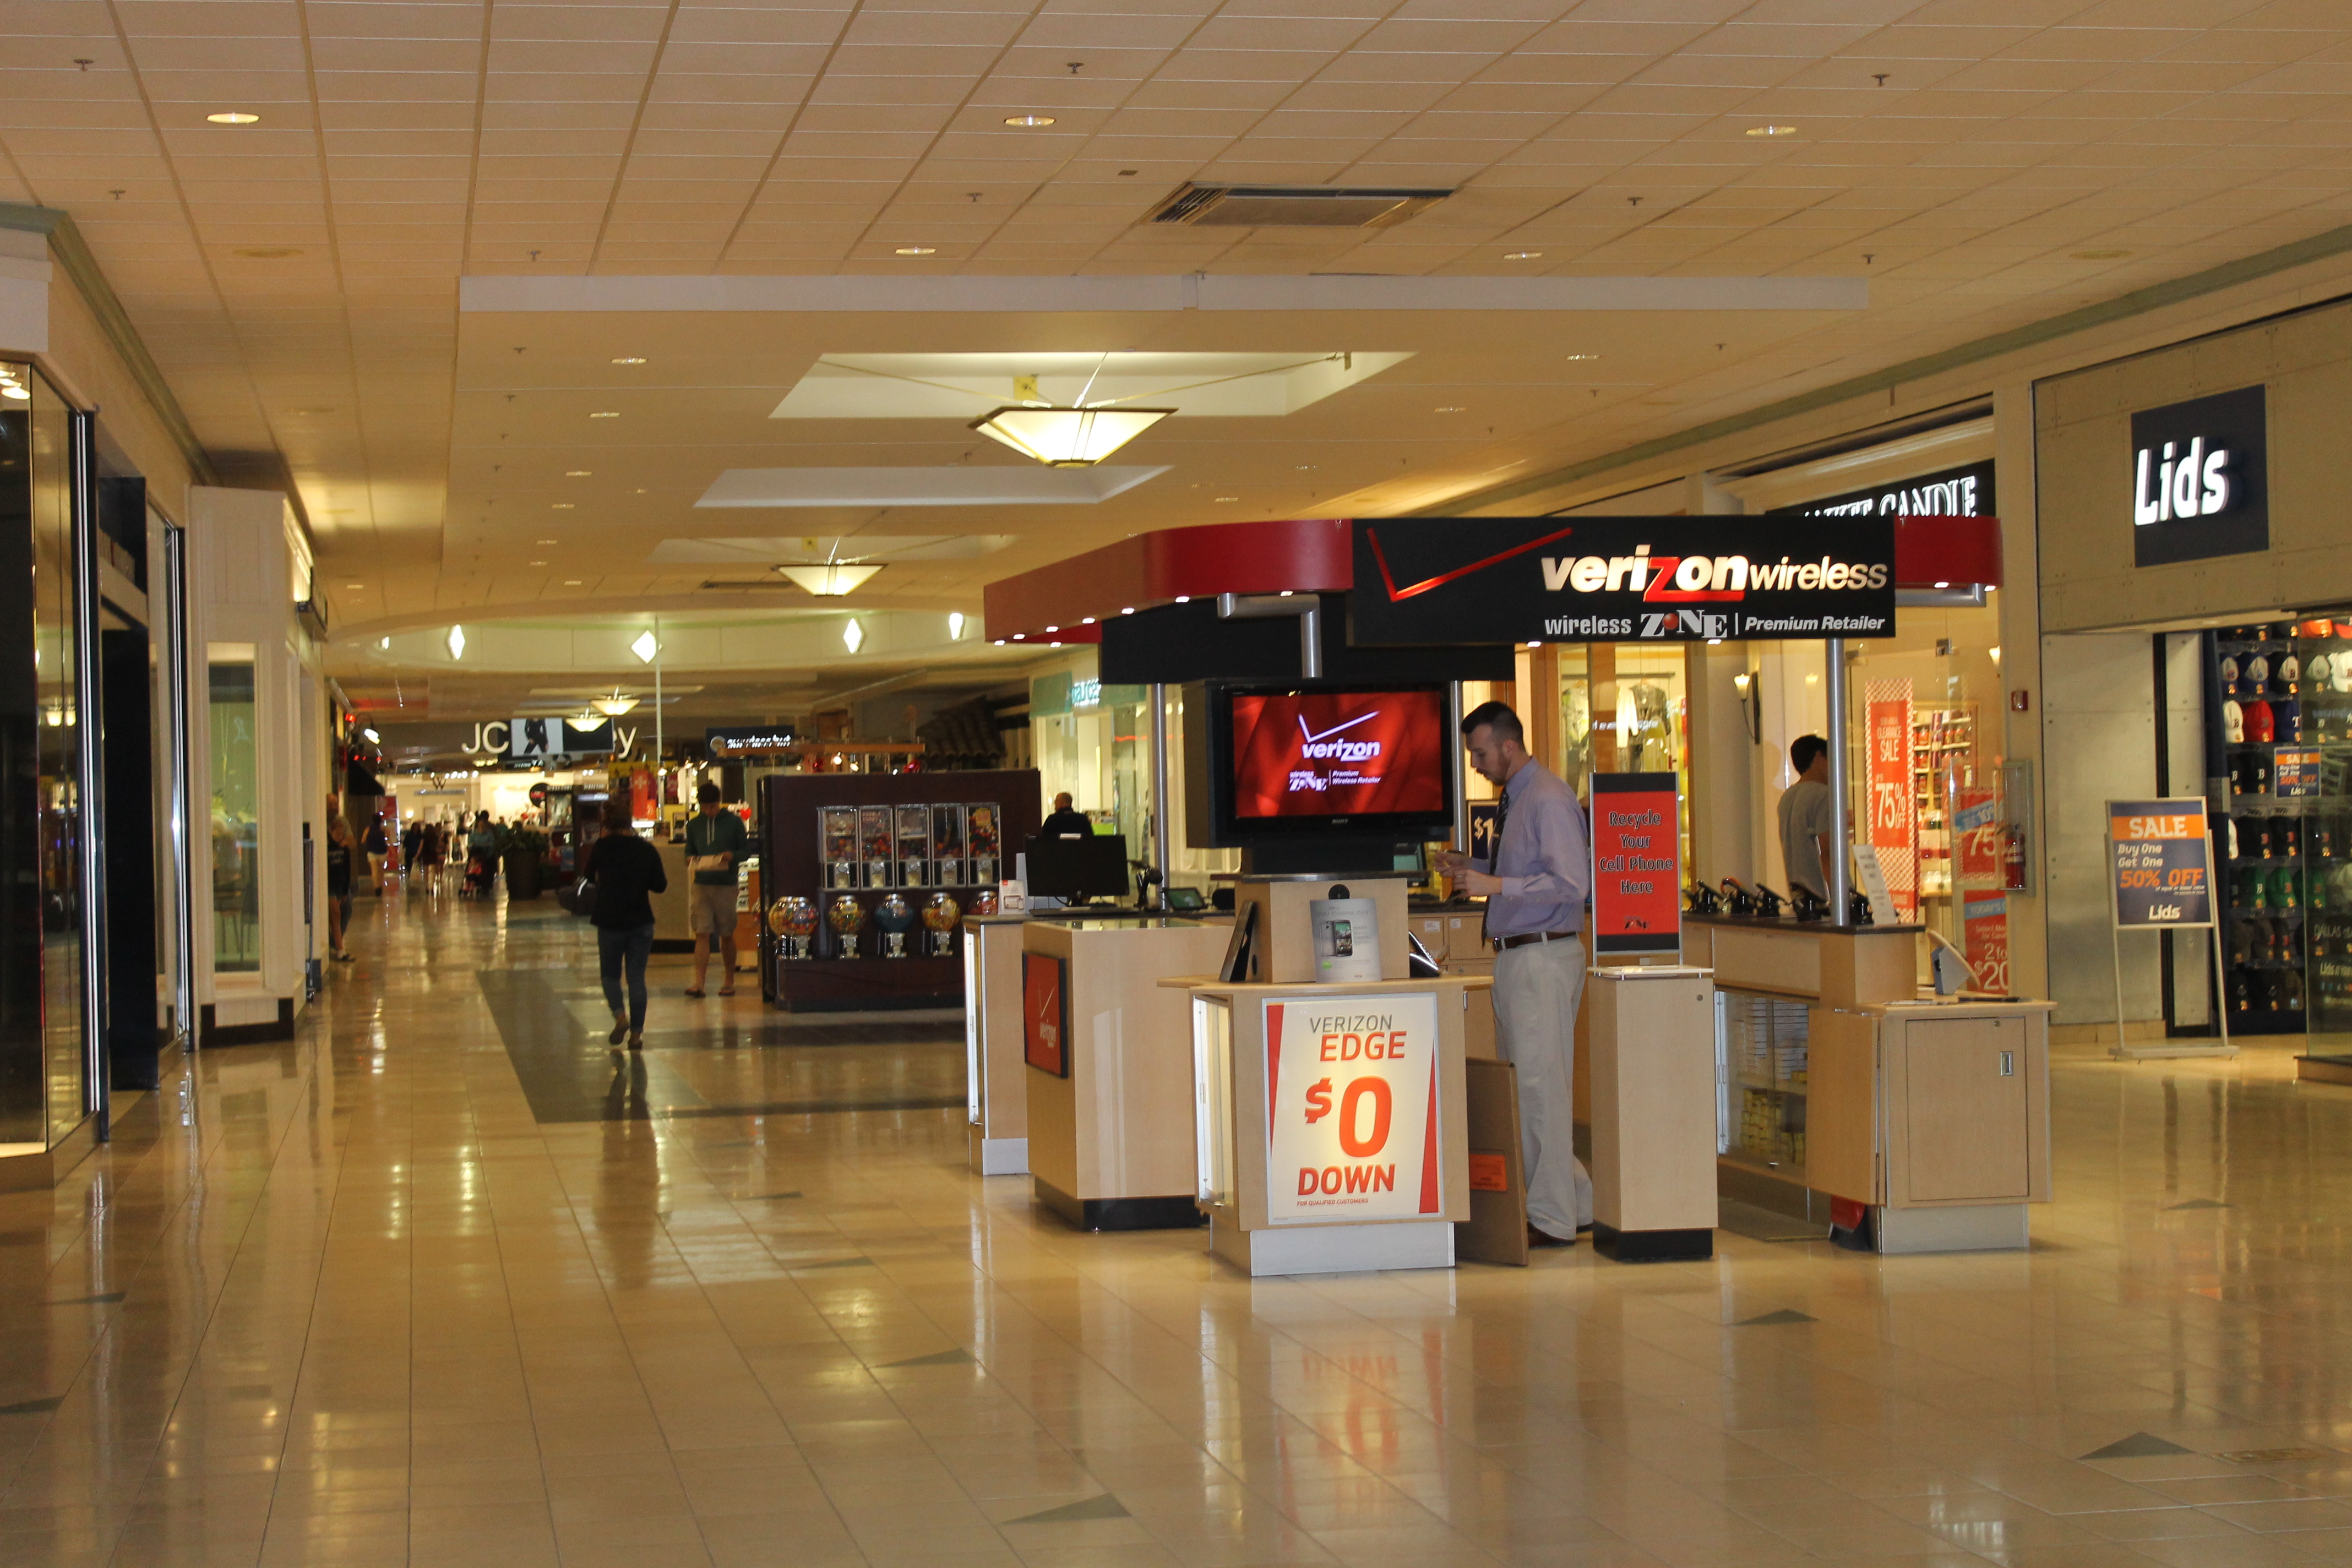 map of the mall dc with File Verizon Wireless At Bangor Mall  Bangor  Me Img 2617 on The National Mall also Gr221 Stage 3b Deia To Puerto Soller Or Soller further The Mall moreover File Verizon Wireless at Bangor Mall  Bangor  ME IMG 2617 together with 4943228218.